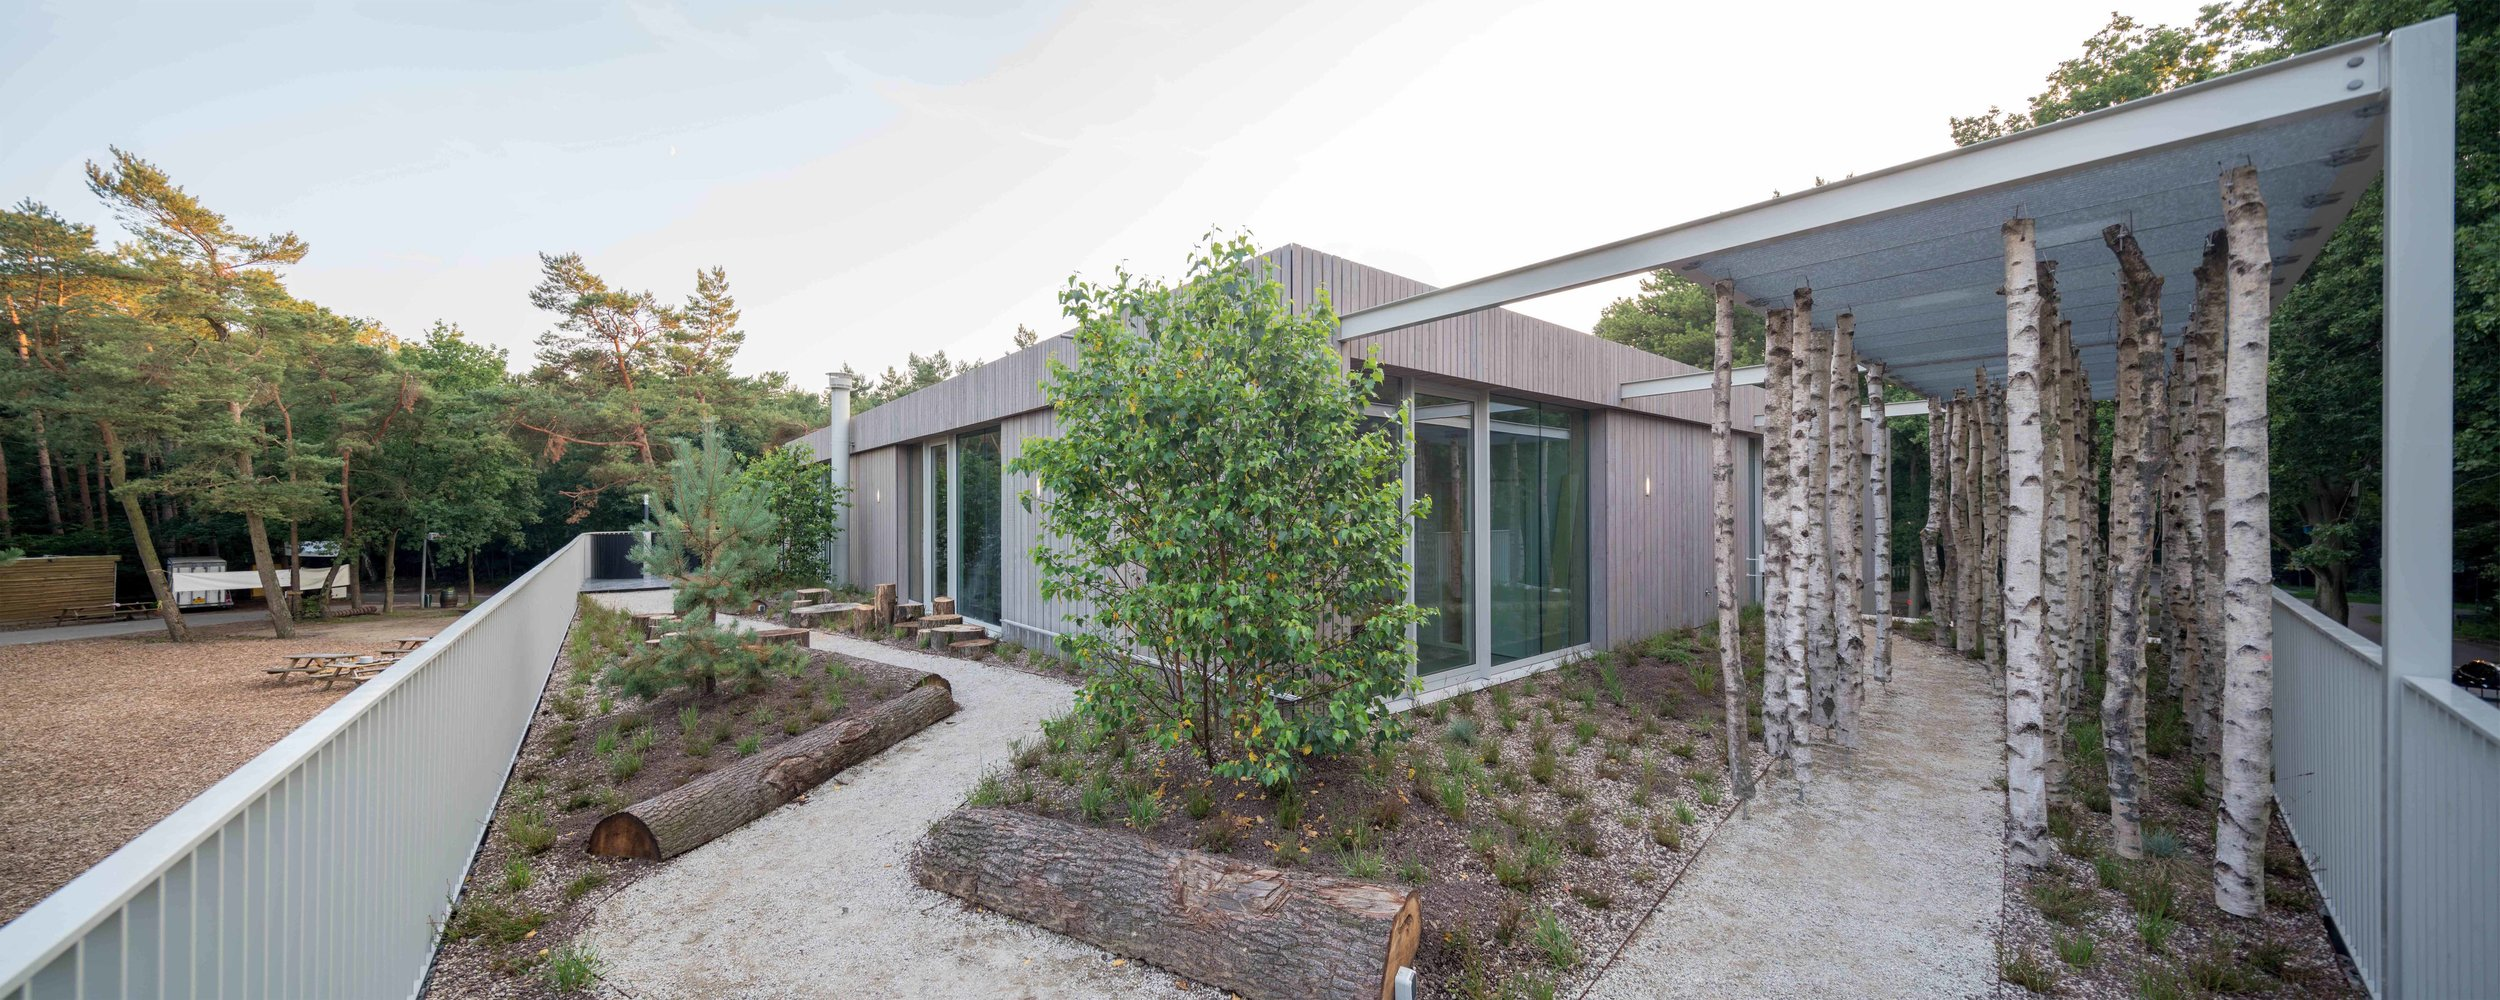 educational roof garden decorated with elements from the surrounding forest